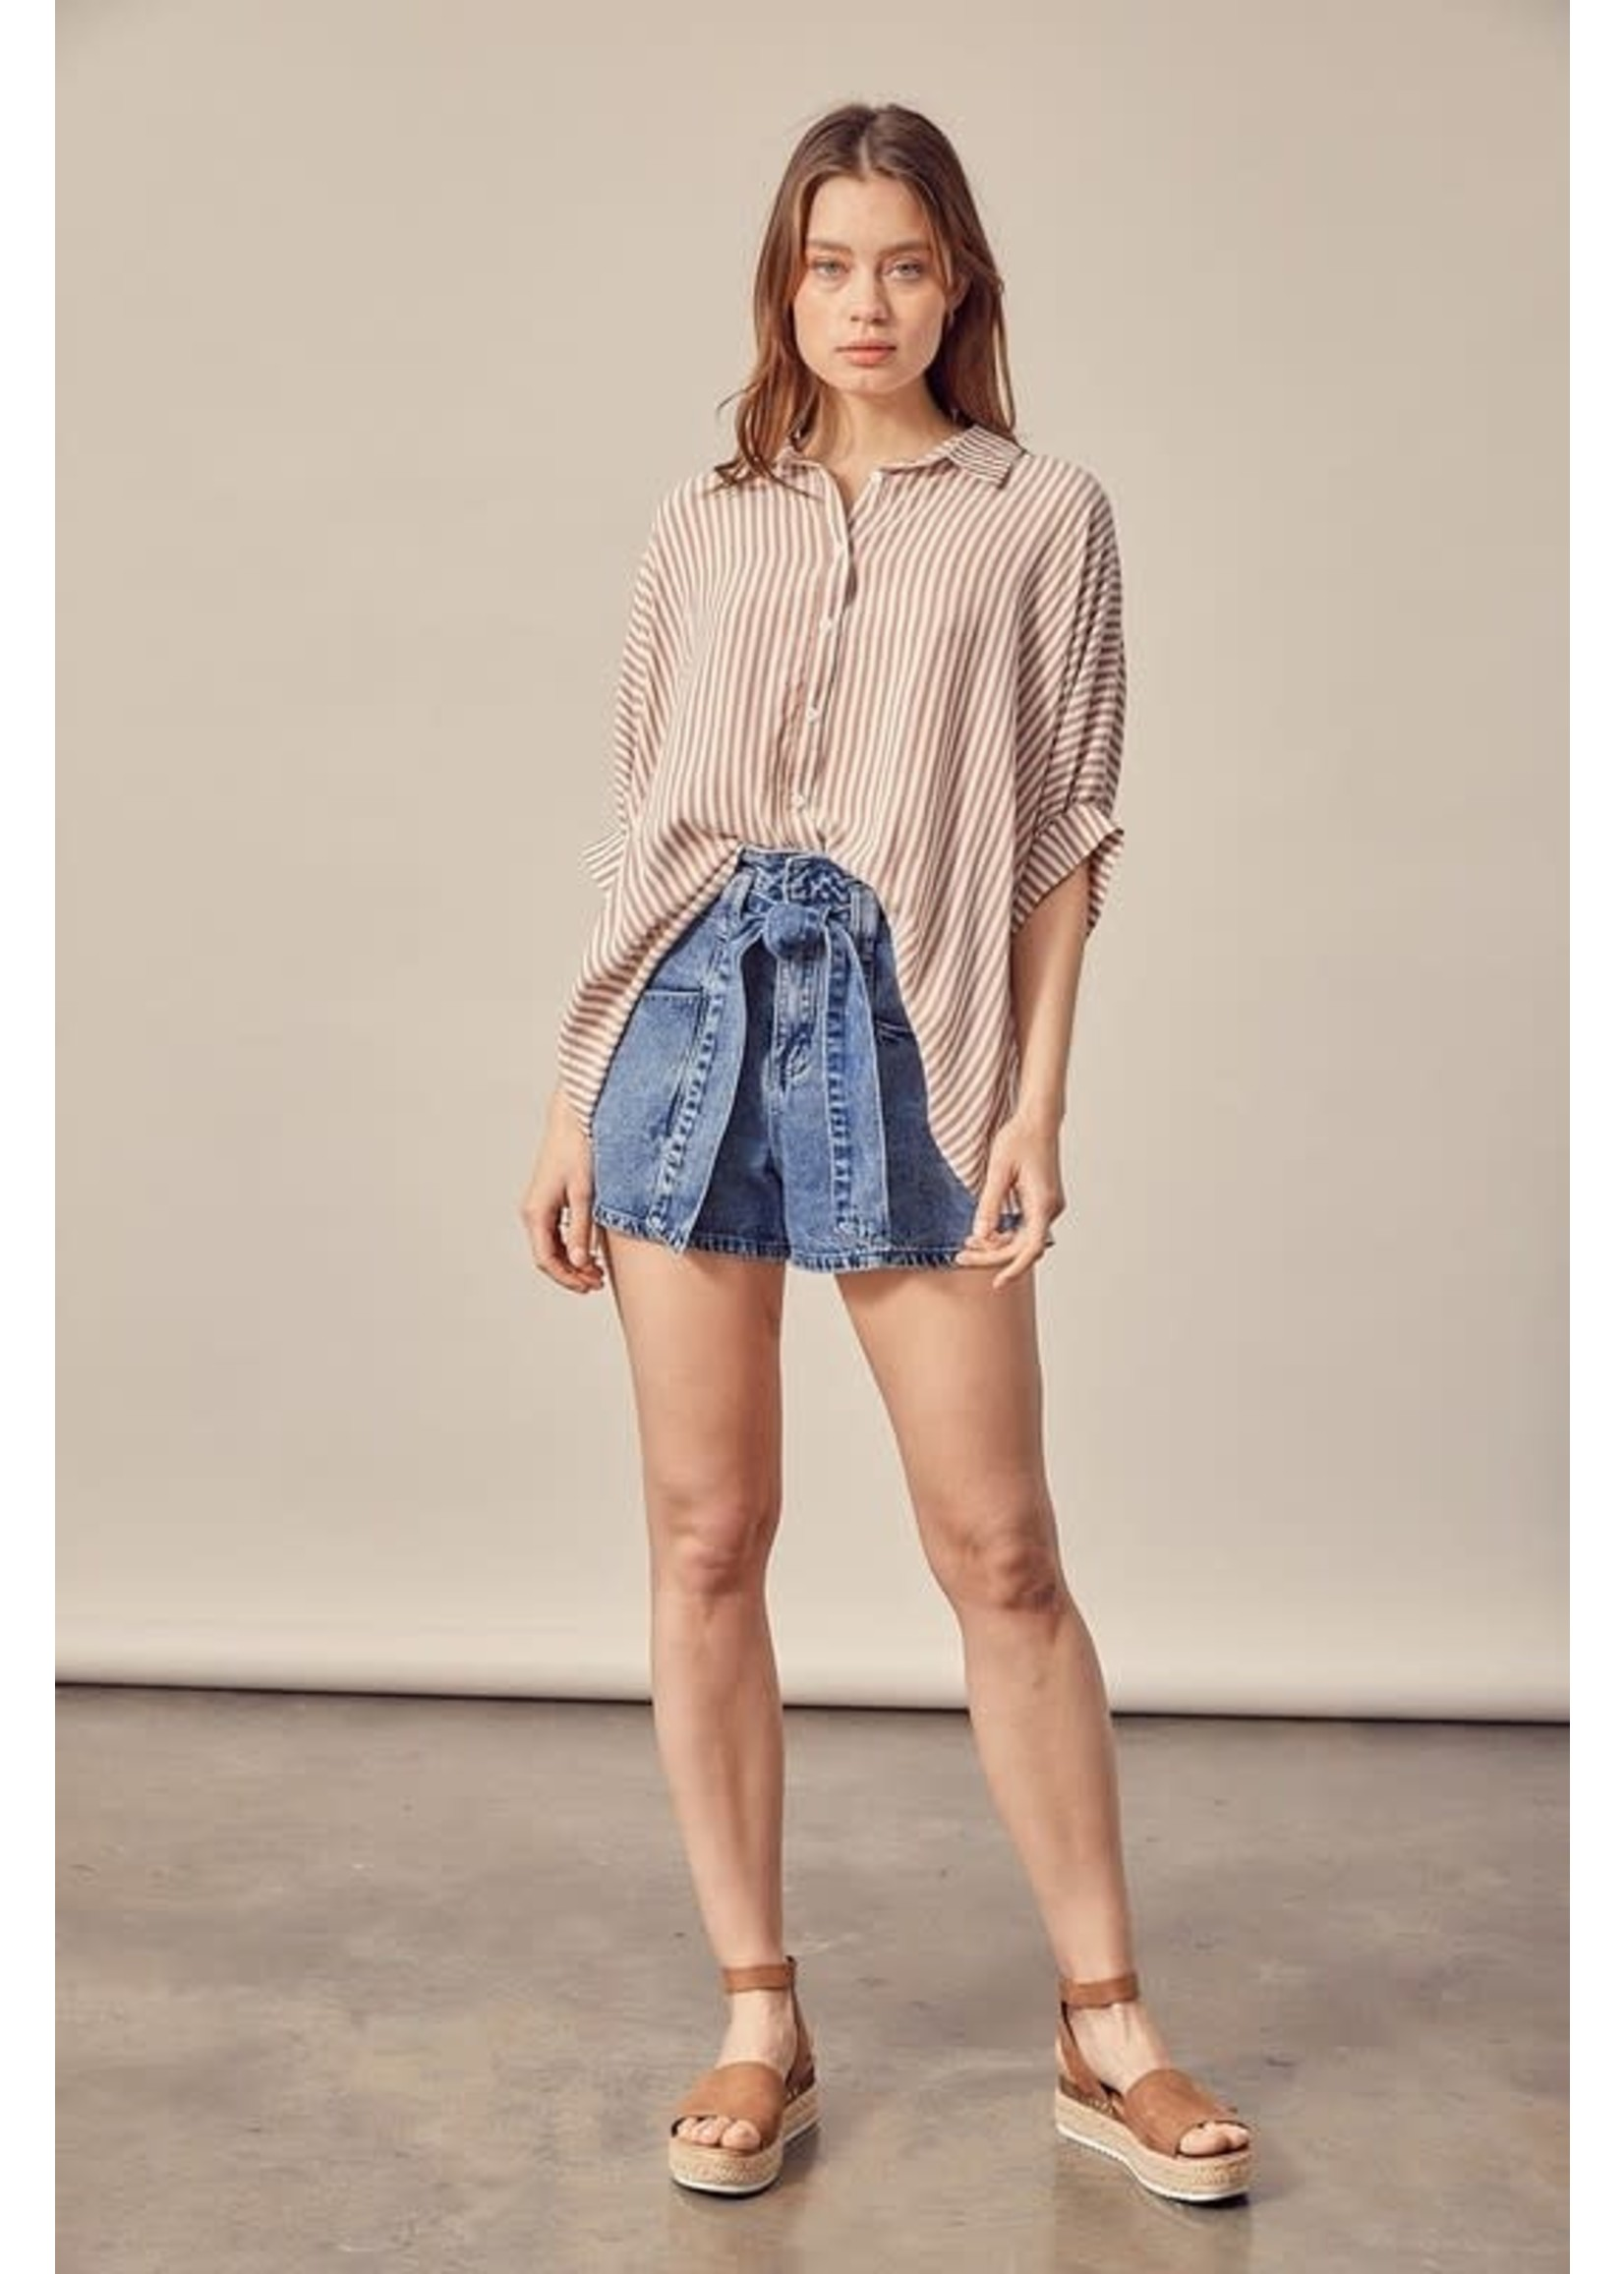 Mustard Seed Short Sleeved Button Up Blouse - S17425